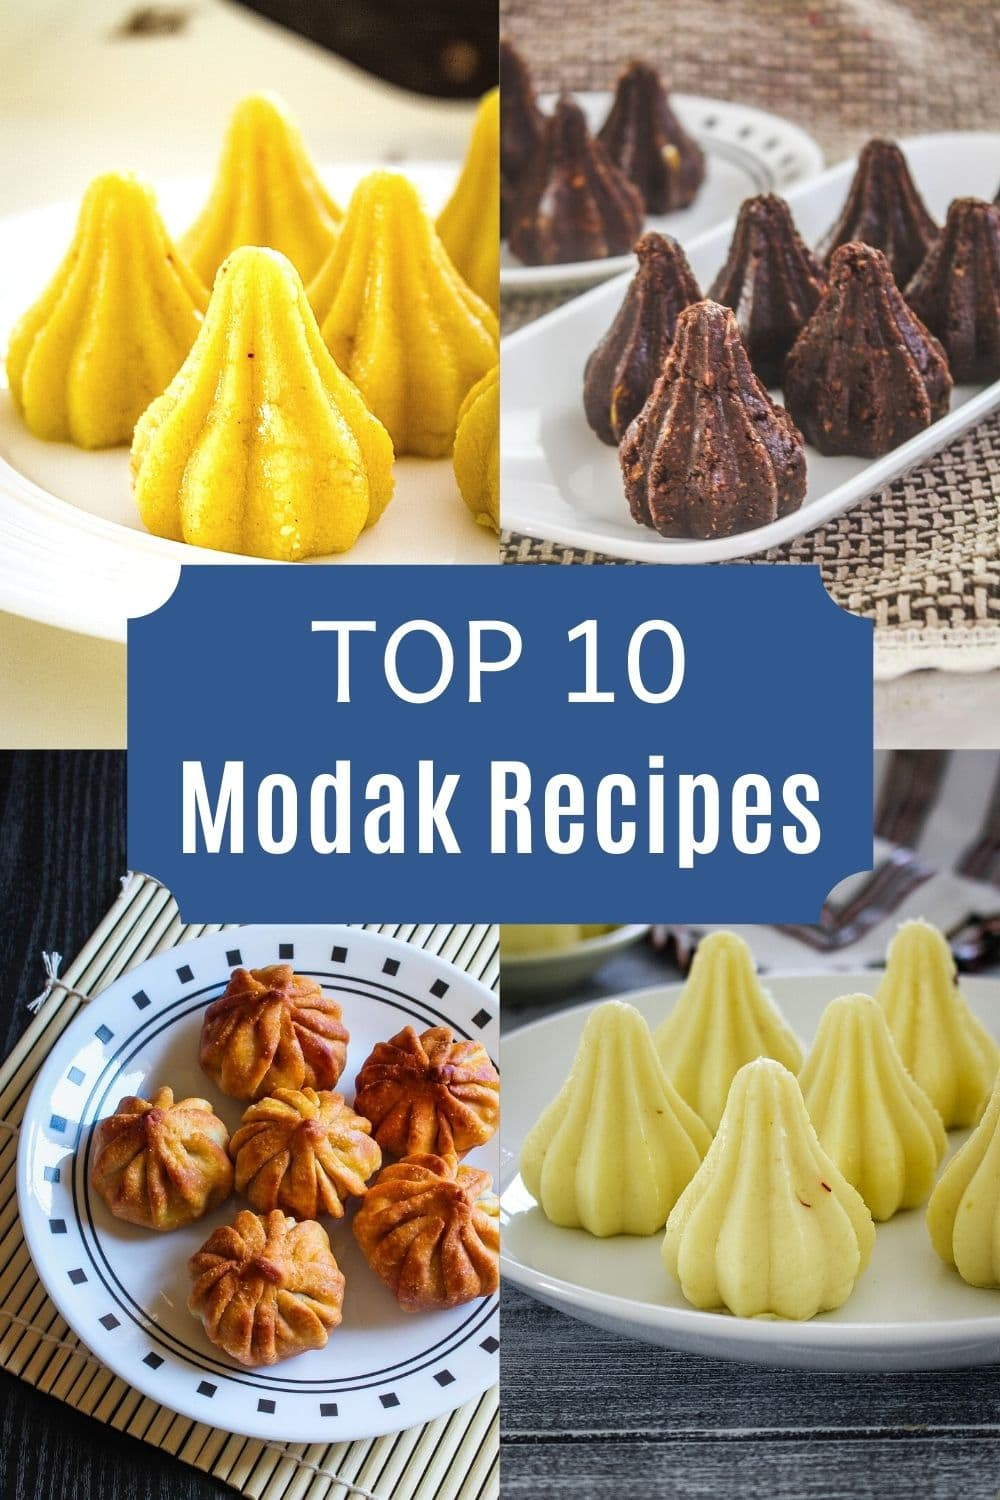 collage of 4 images showing modak peda, chocolate modak, fried modak, malai modak with text in the center